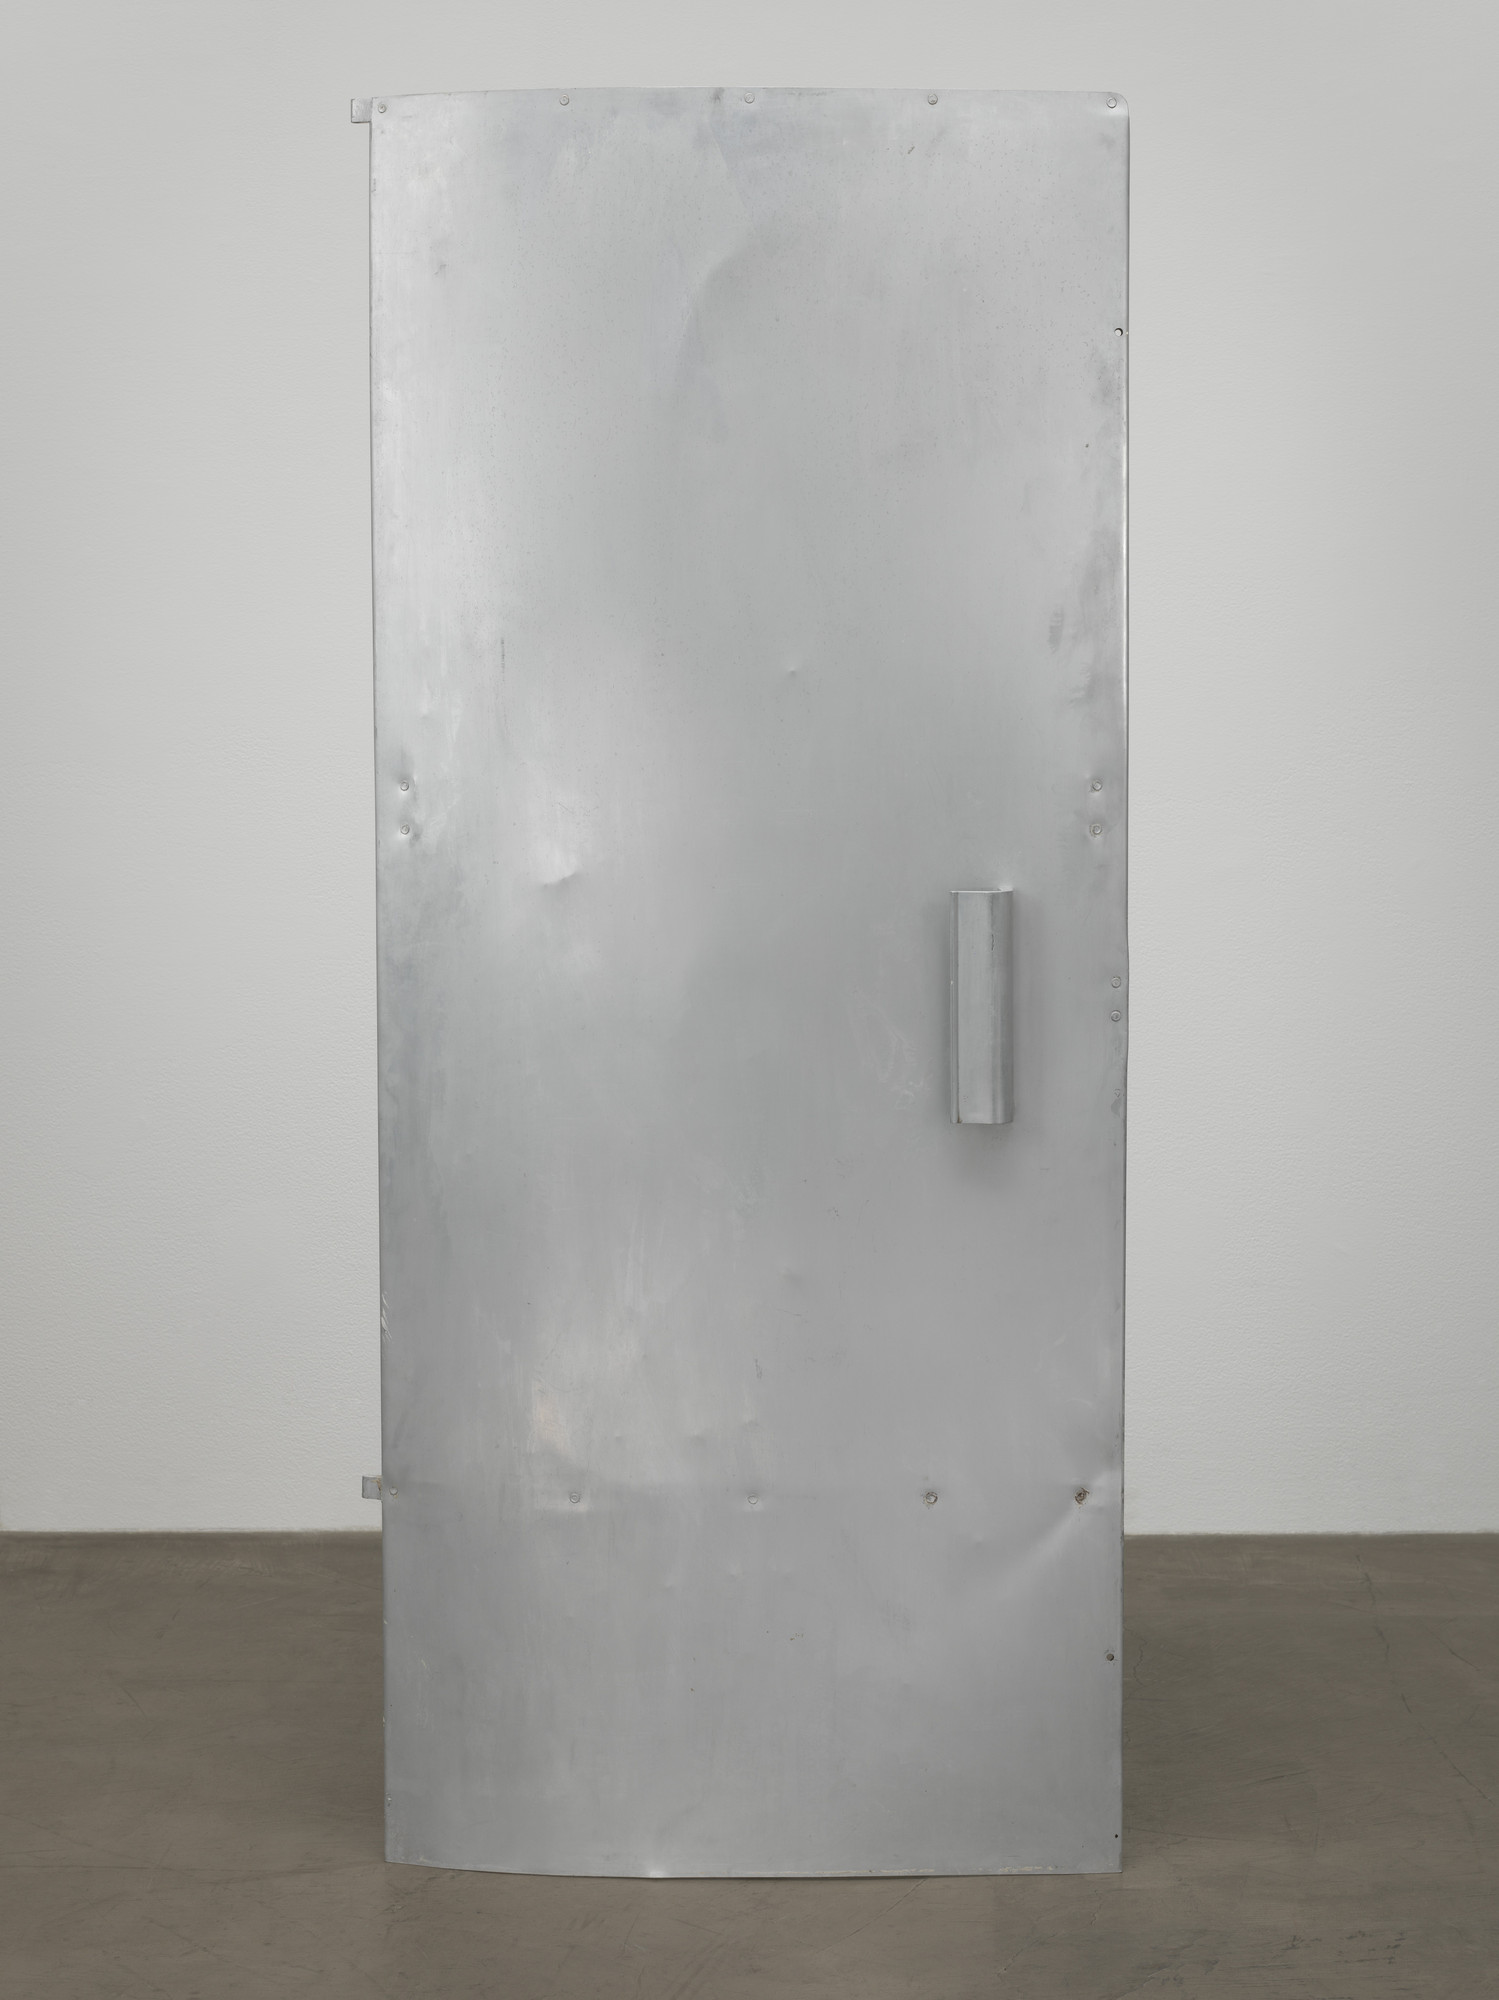 Charlotte Perriand, Le Corbusier (Charles-Édouard Jeanneret). Shower door from the Maison du Brésil. 1959